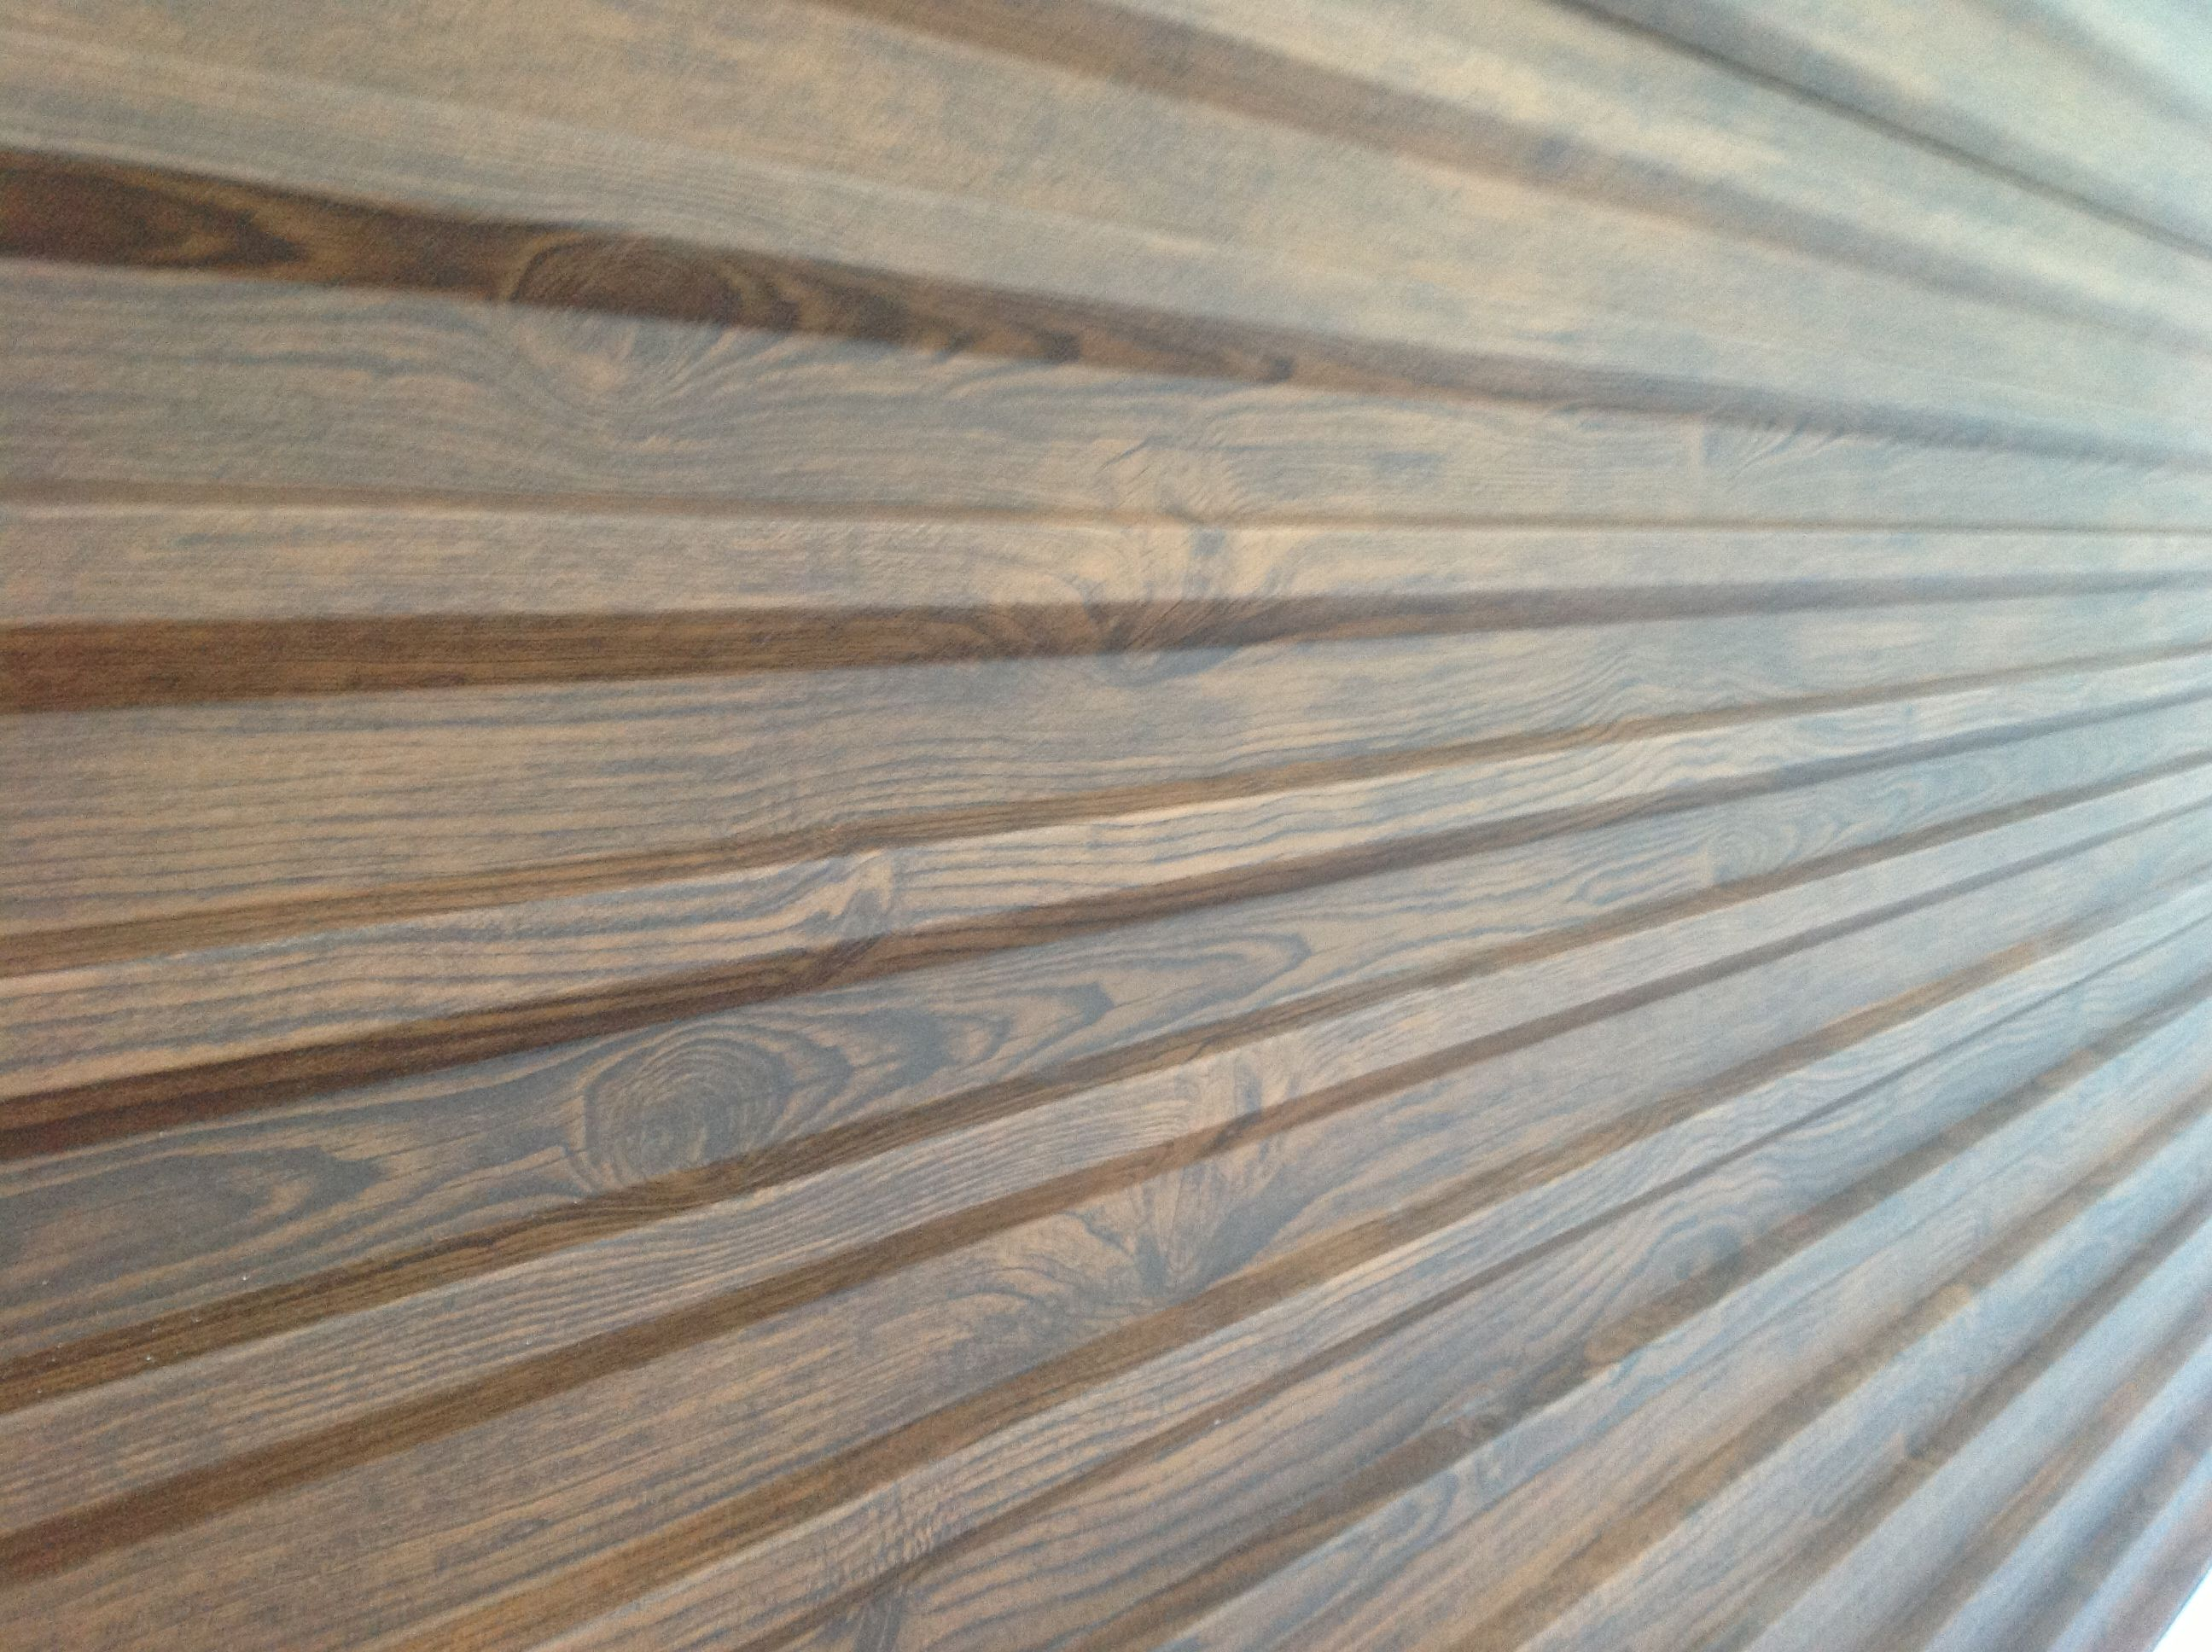 Metal siding with wood grain finish for Wood grain siding panels